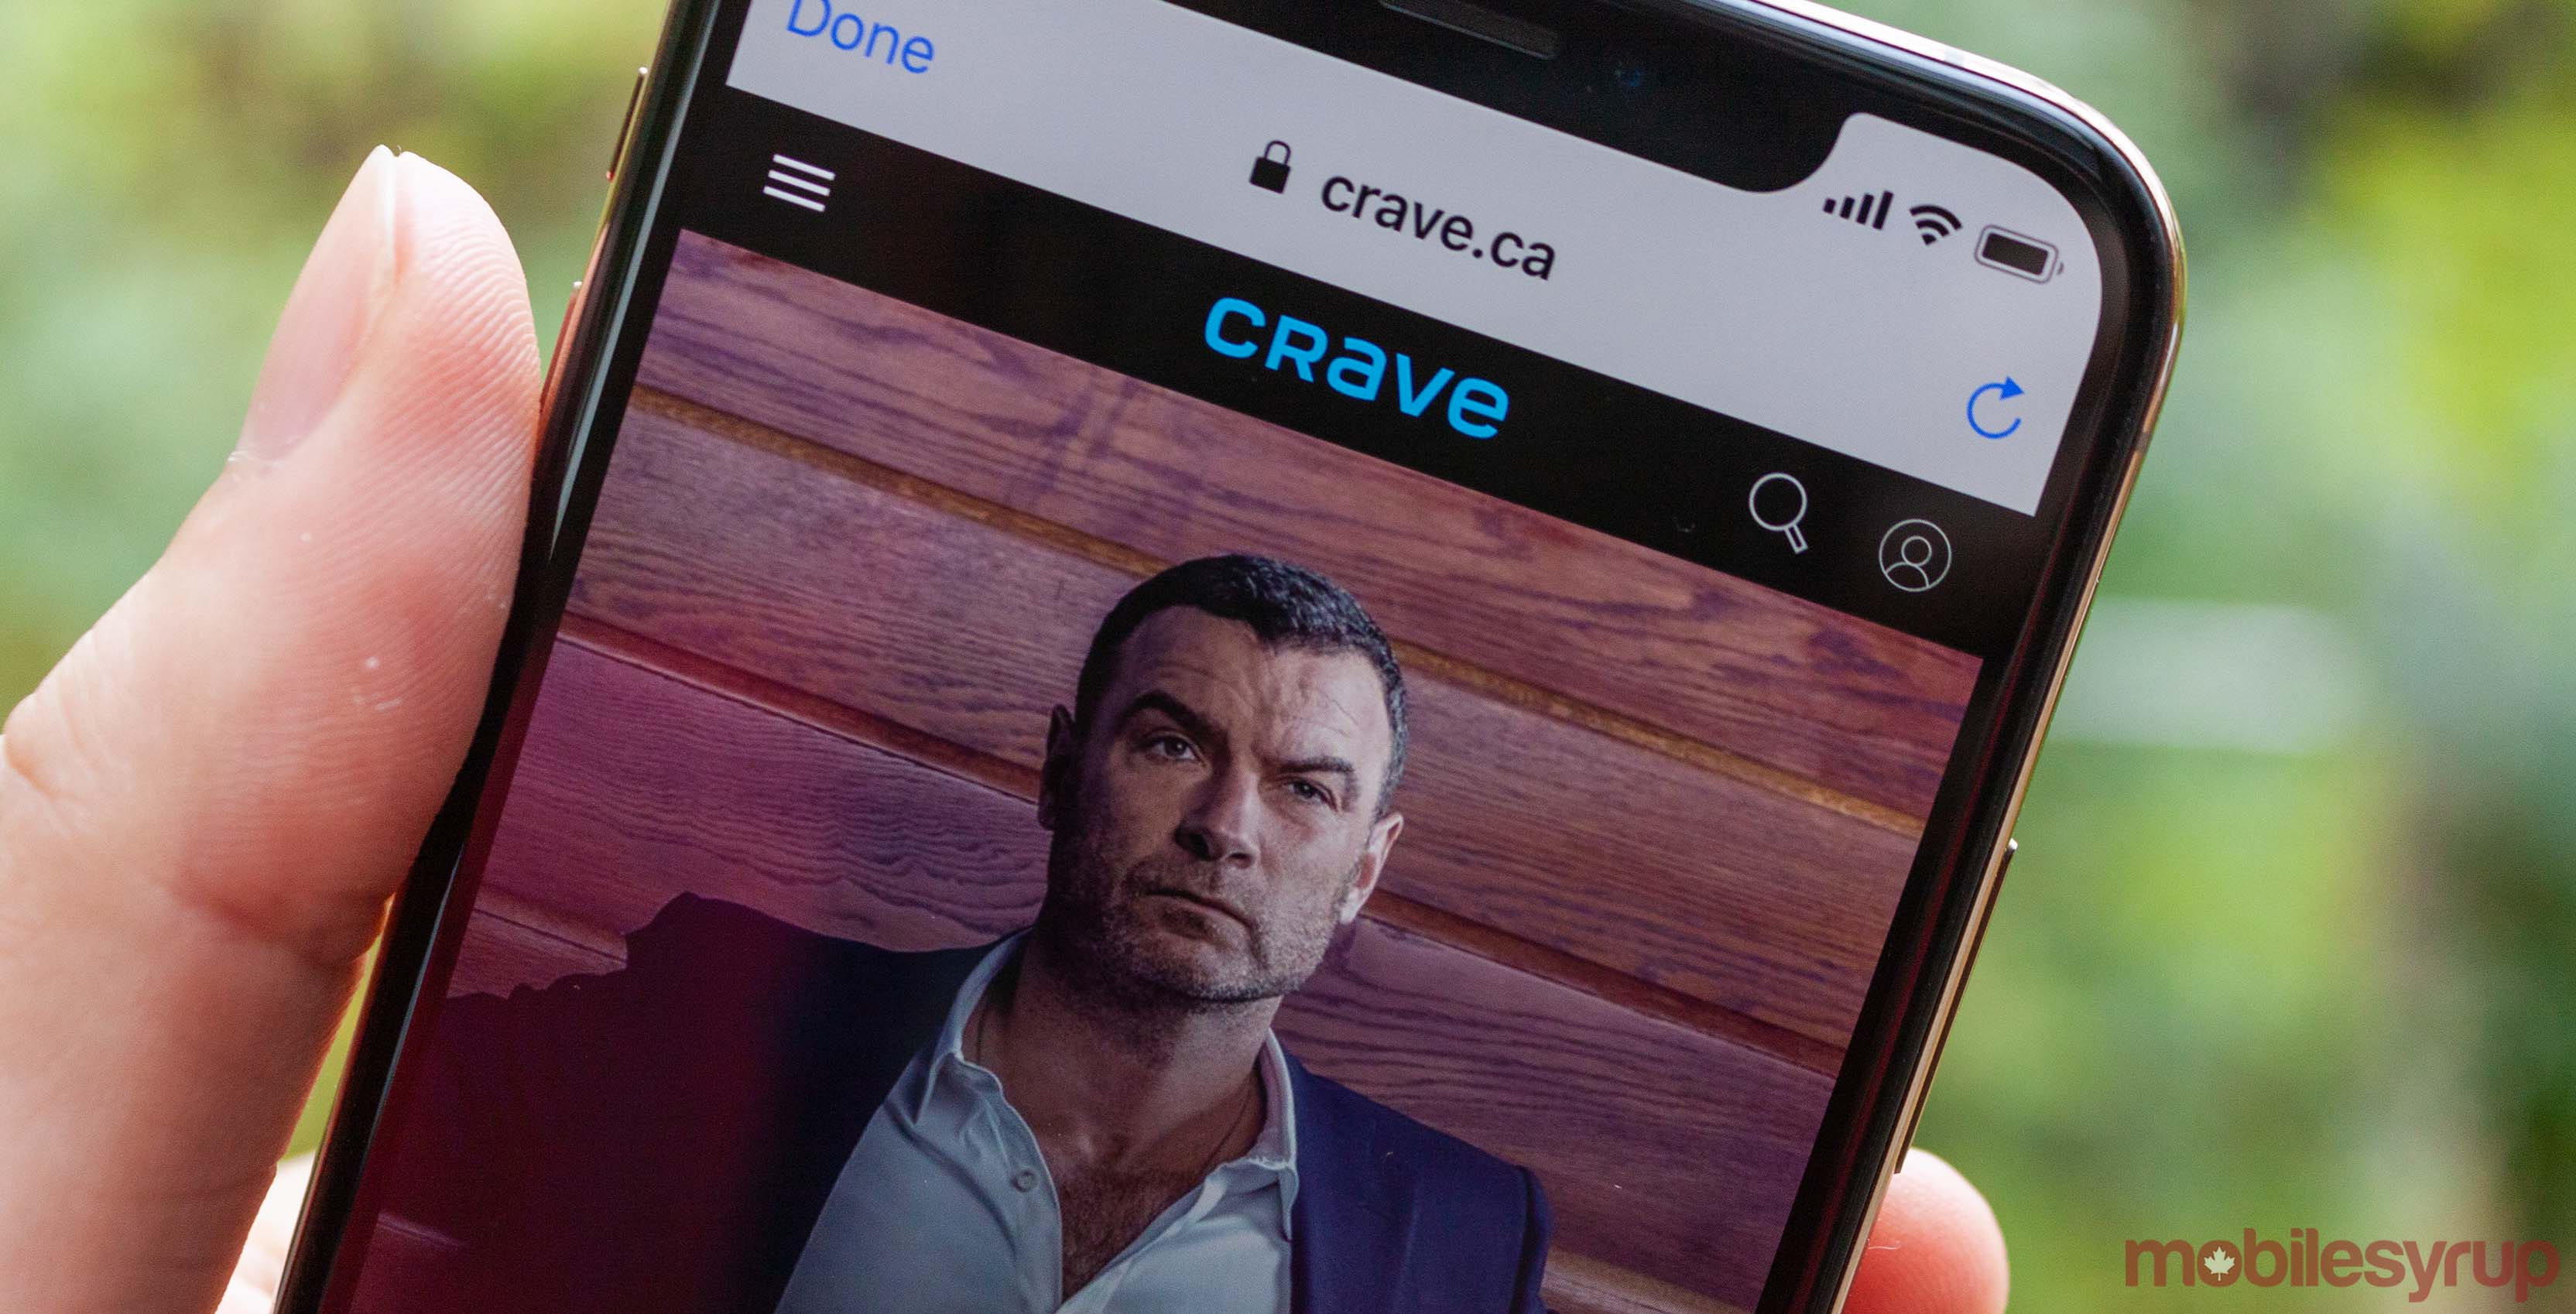 Here's what's coming to Crave in September 2019